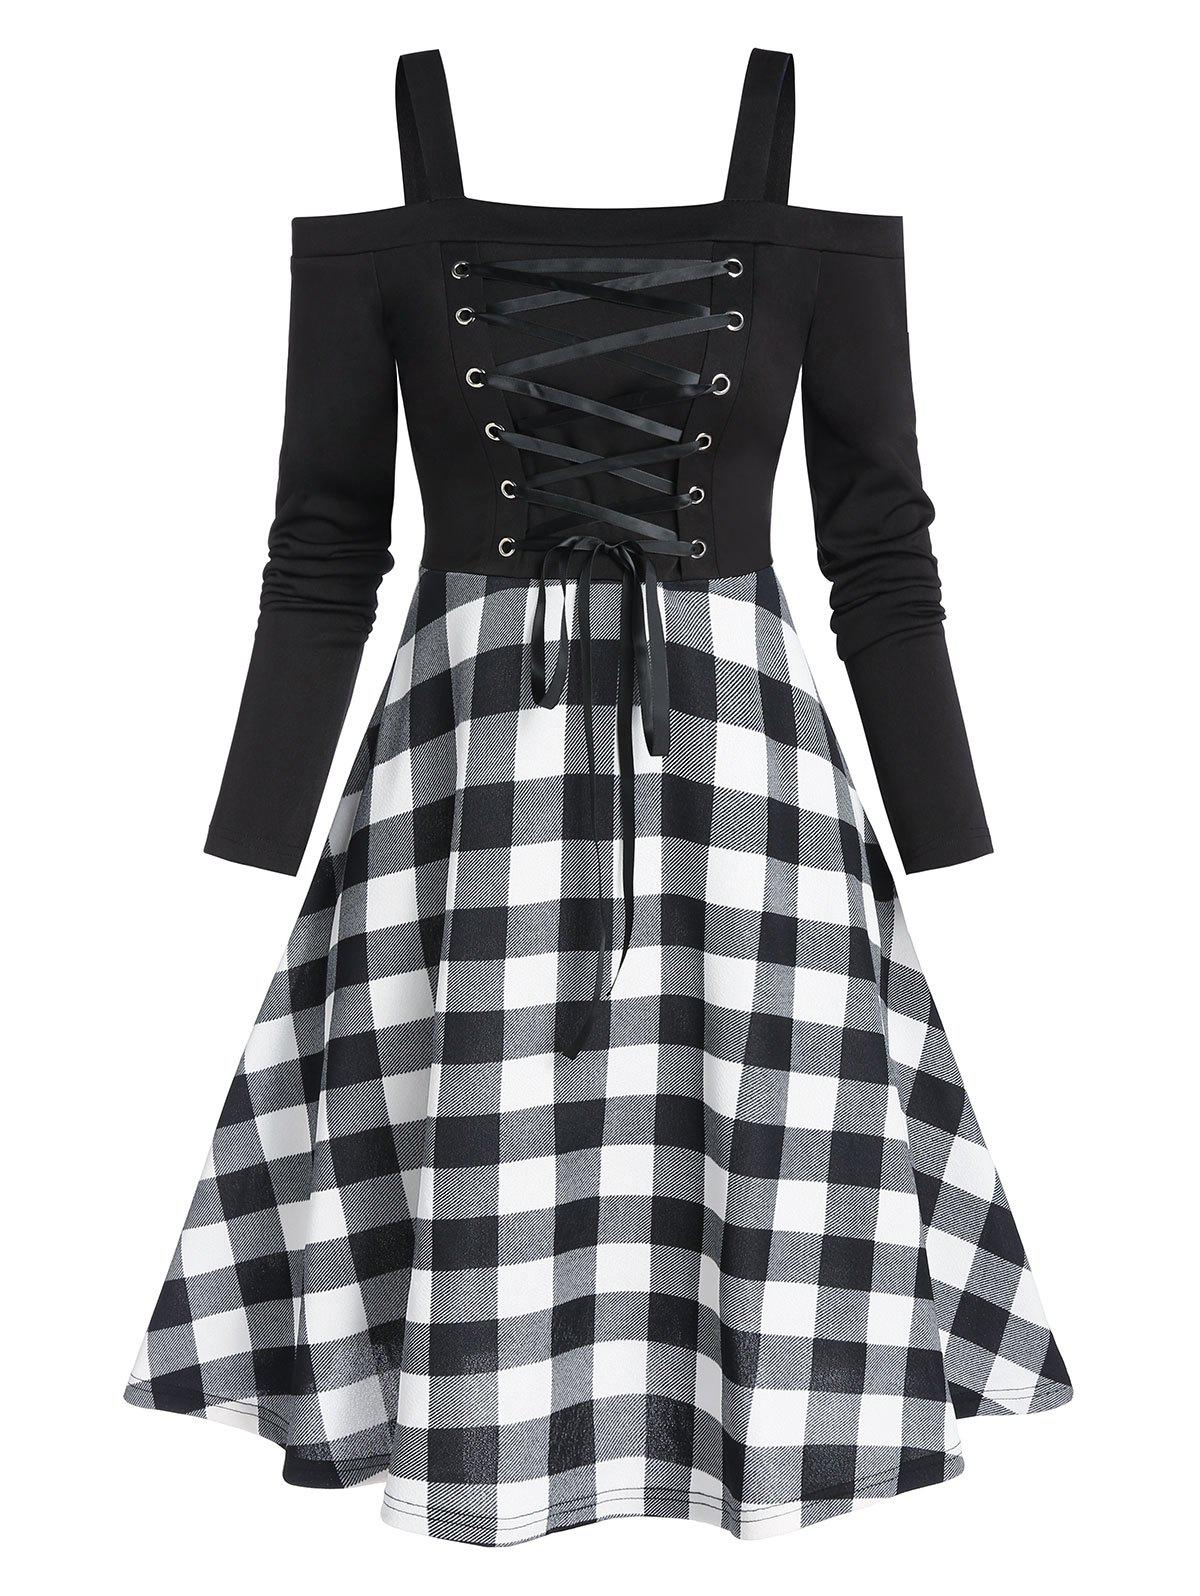 Plaid Print Lace Up High Waist Mini Dress - BLACK L